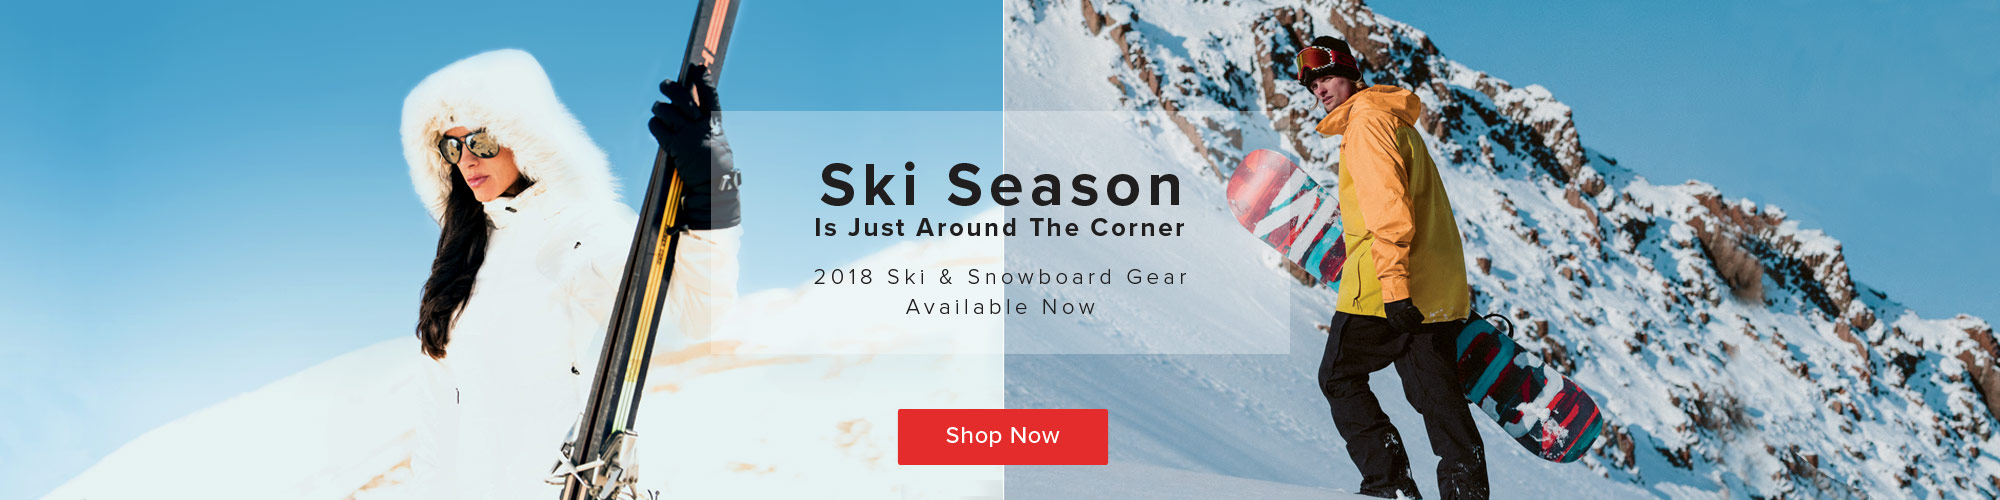 Ski Season is just around the corner - Shop all new Ski & Snowboard Gear.